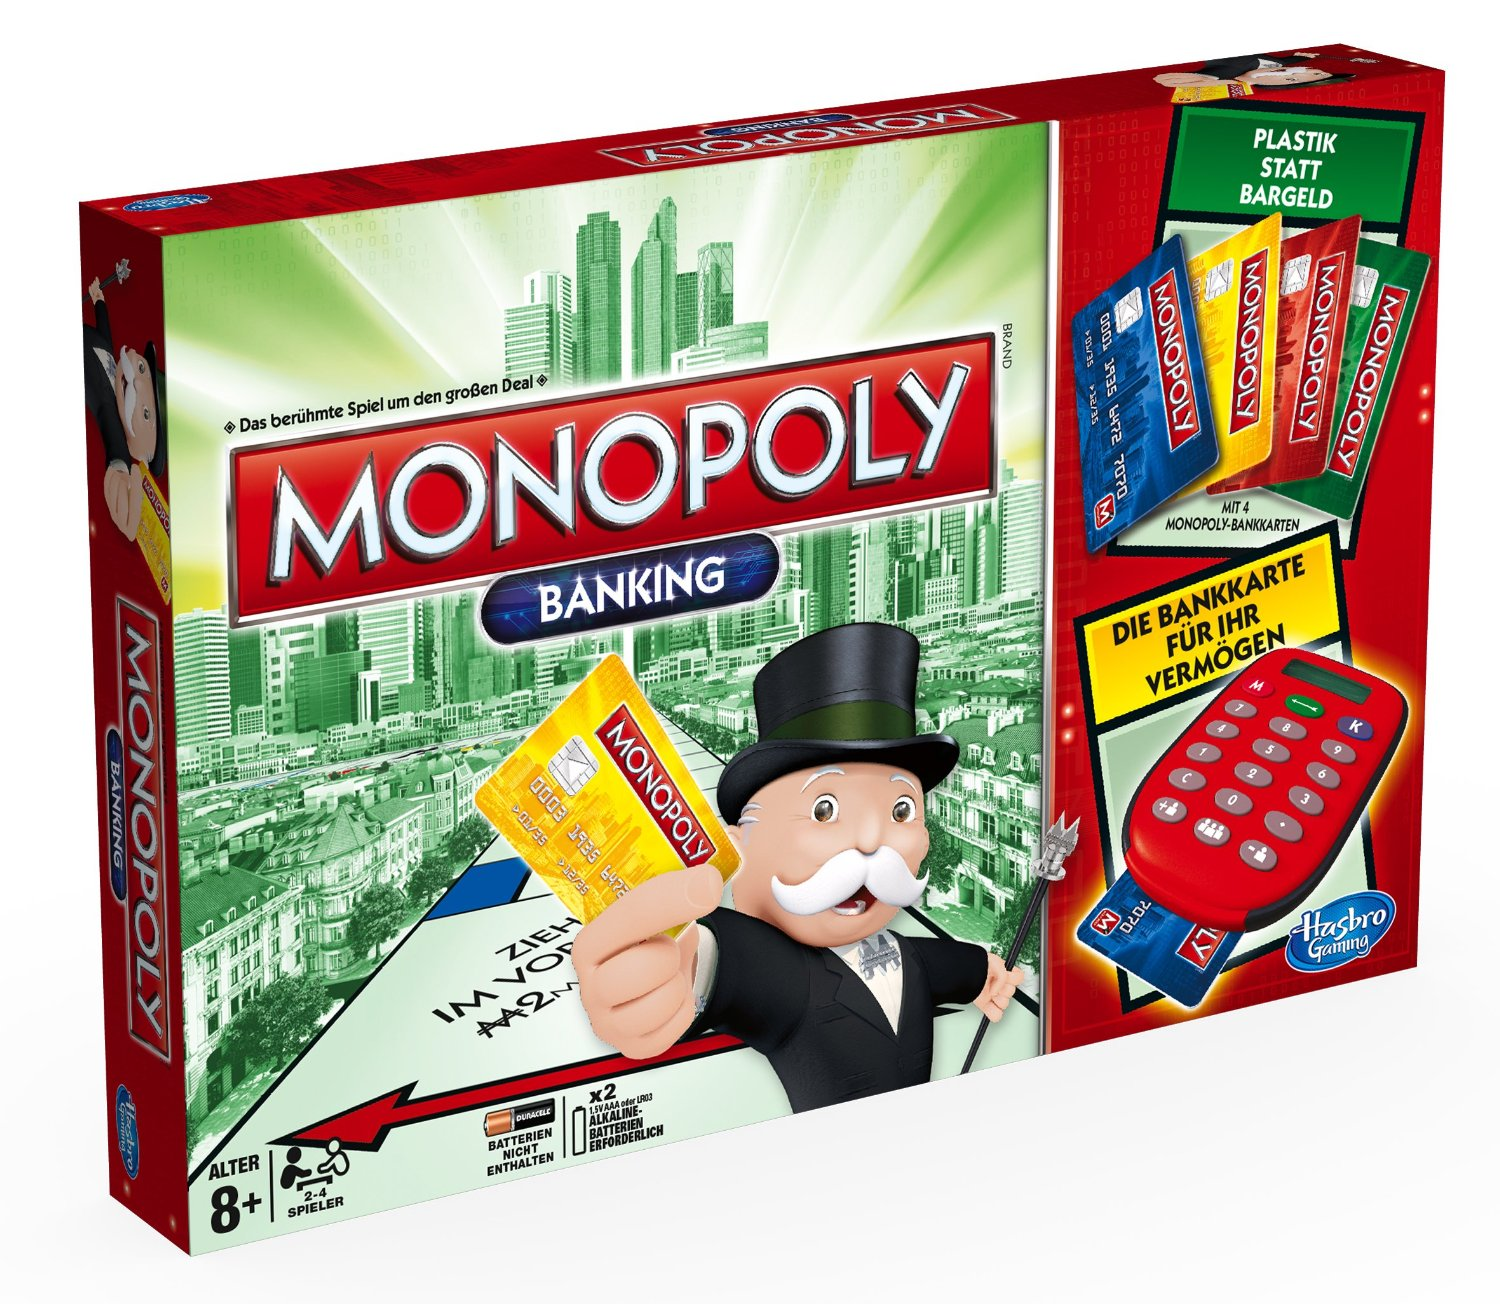 anleitung monopoly banking